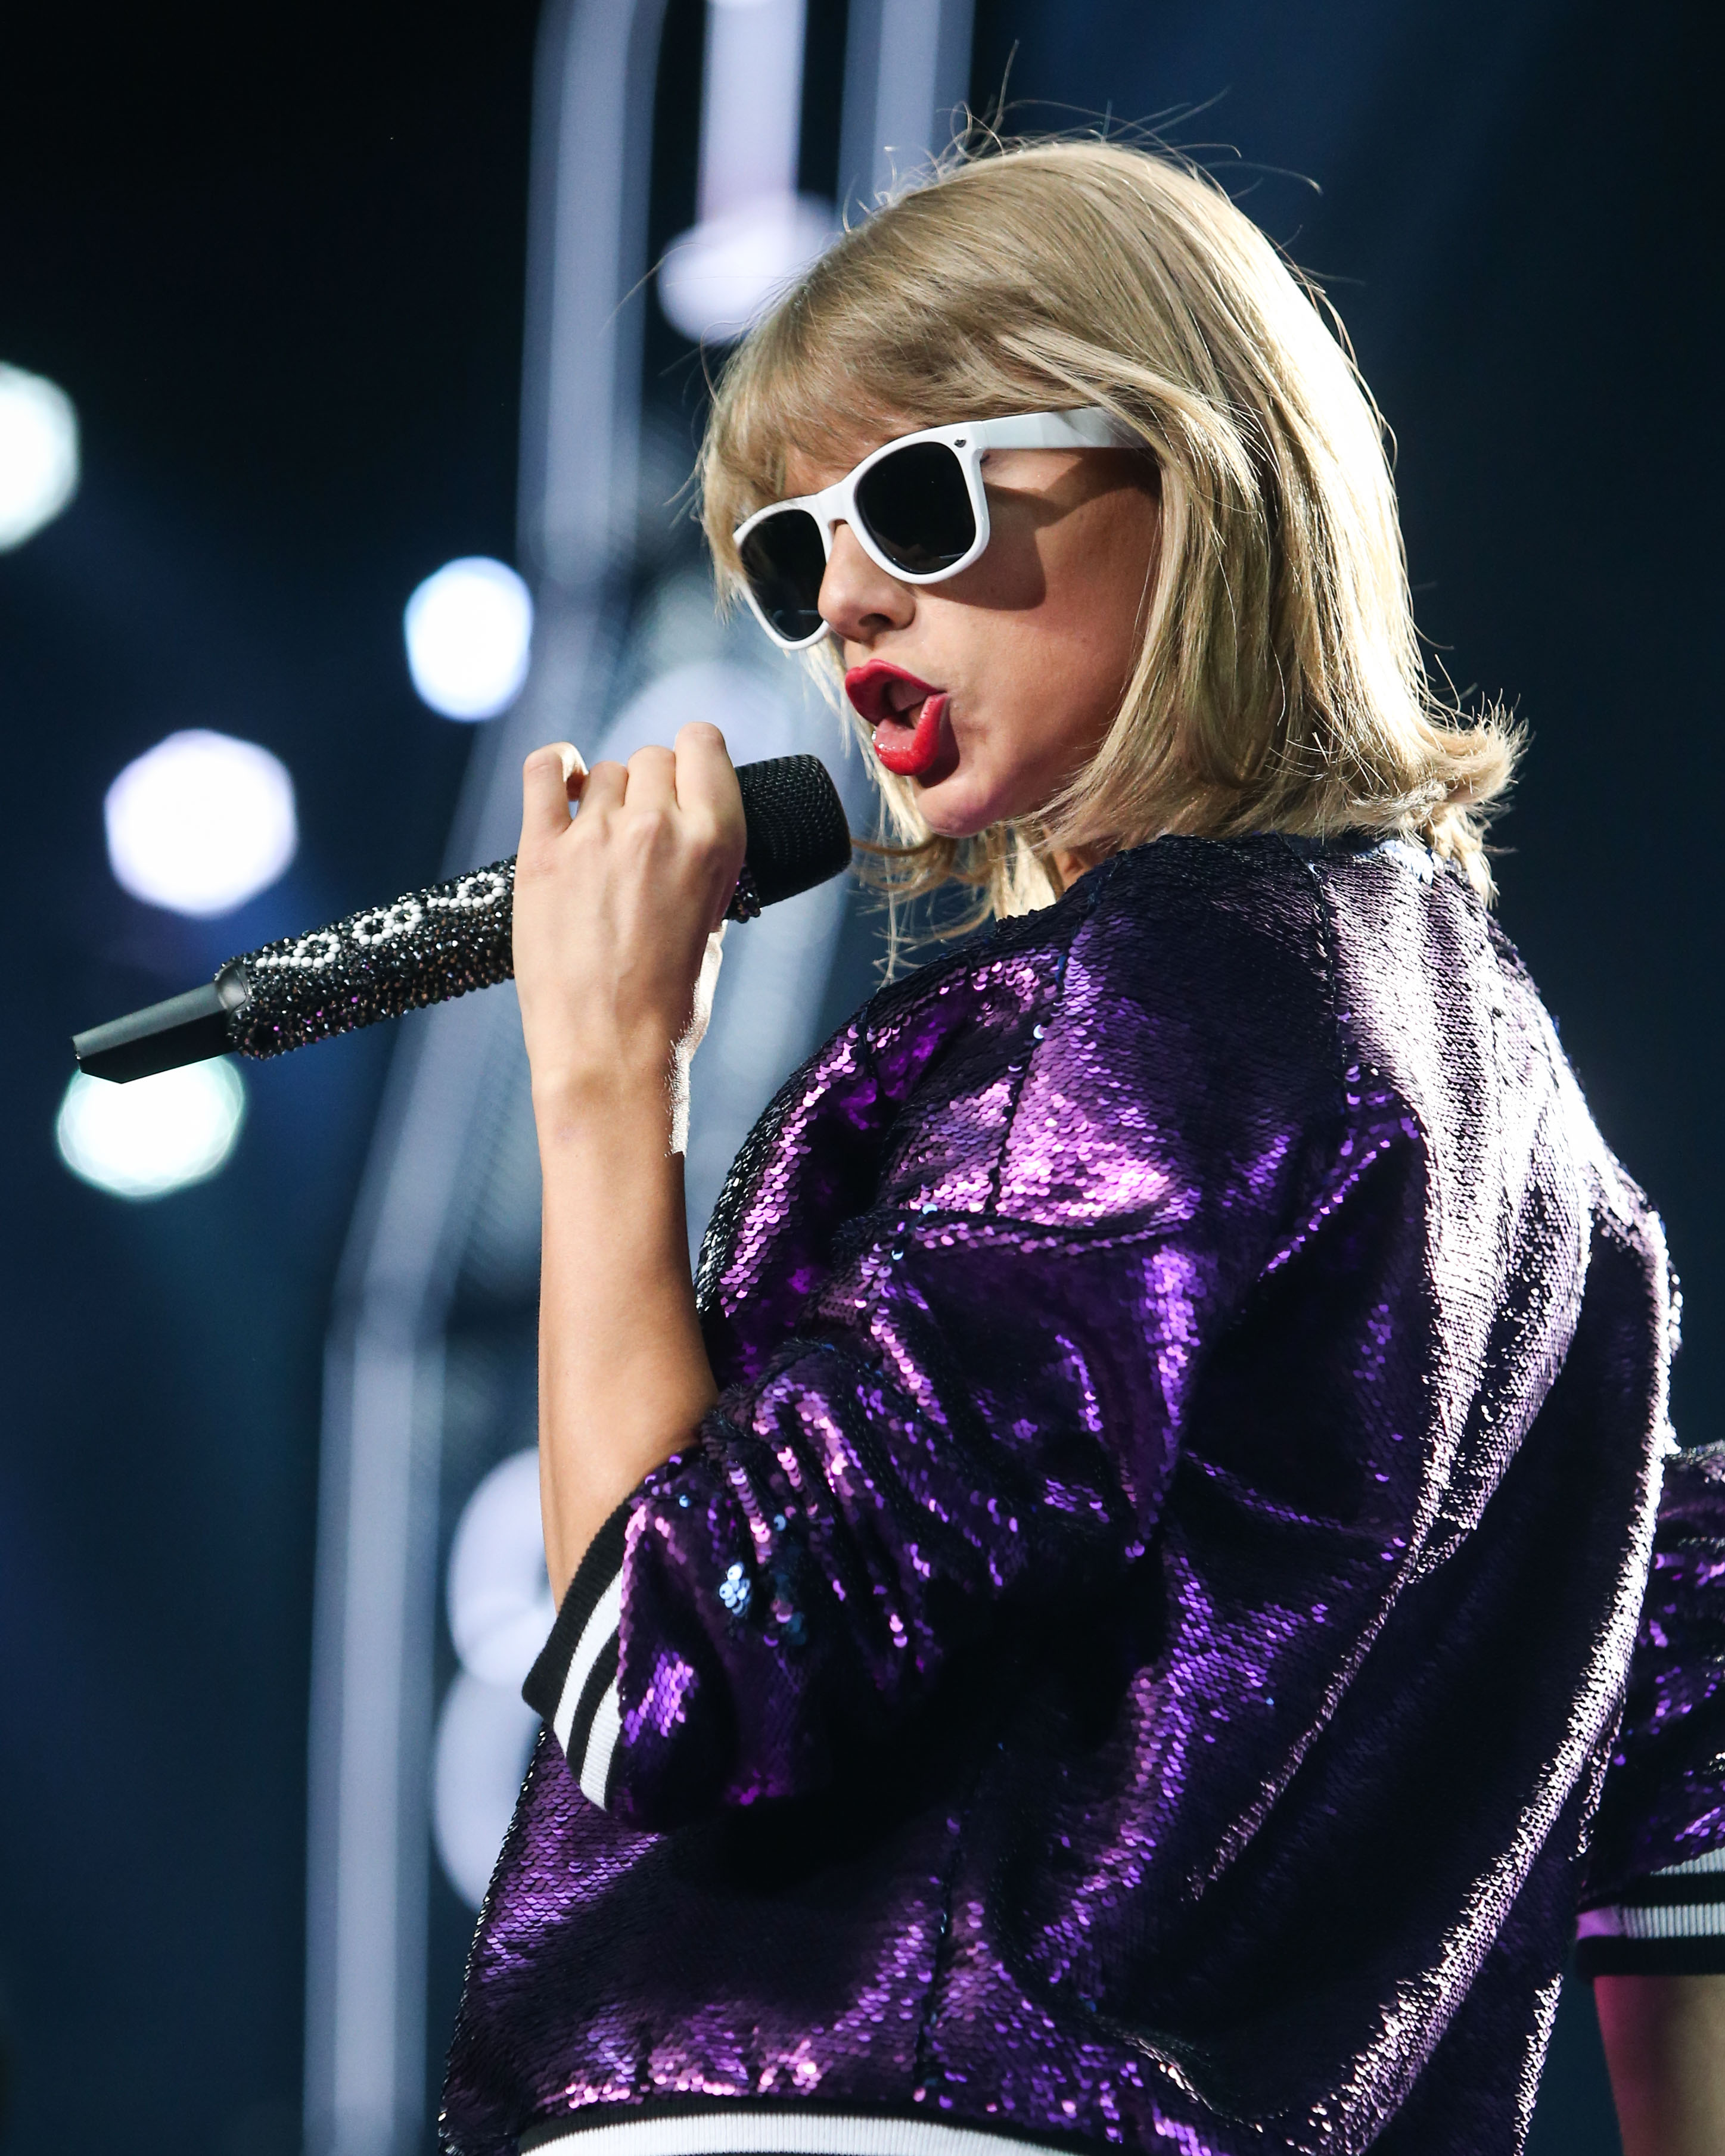 Taylor Swift performs during 'The 1989 World Tour' at Staples Center on August 21, 2015 in Los Angeles, California.  Pictured: Taylor Swift Ref: SPL1107537  210815   Picture by: Splash News  Splash News and Pictures Los Angeles:310-821-2666 New York:212-619-2666 London:870-934-2666 photodesk@splashnews.com